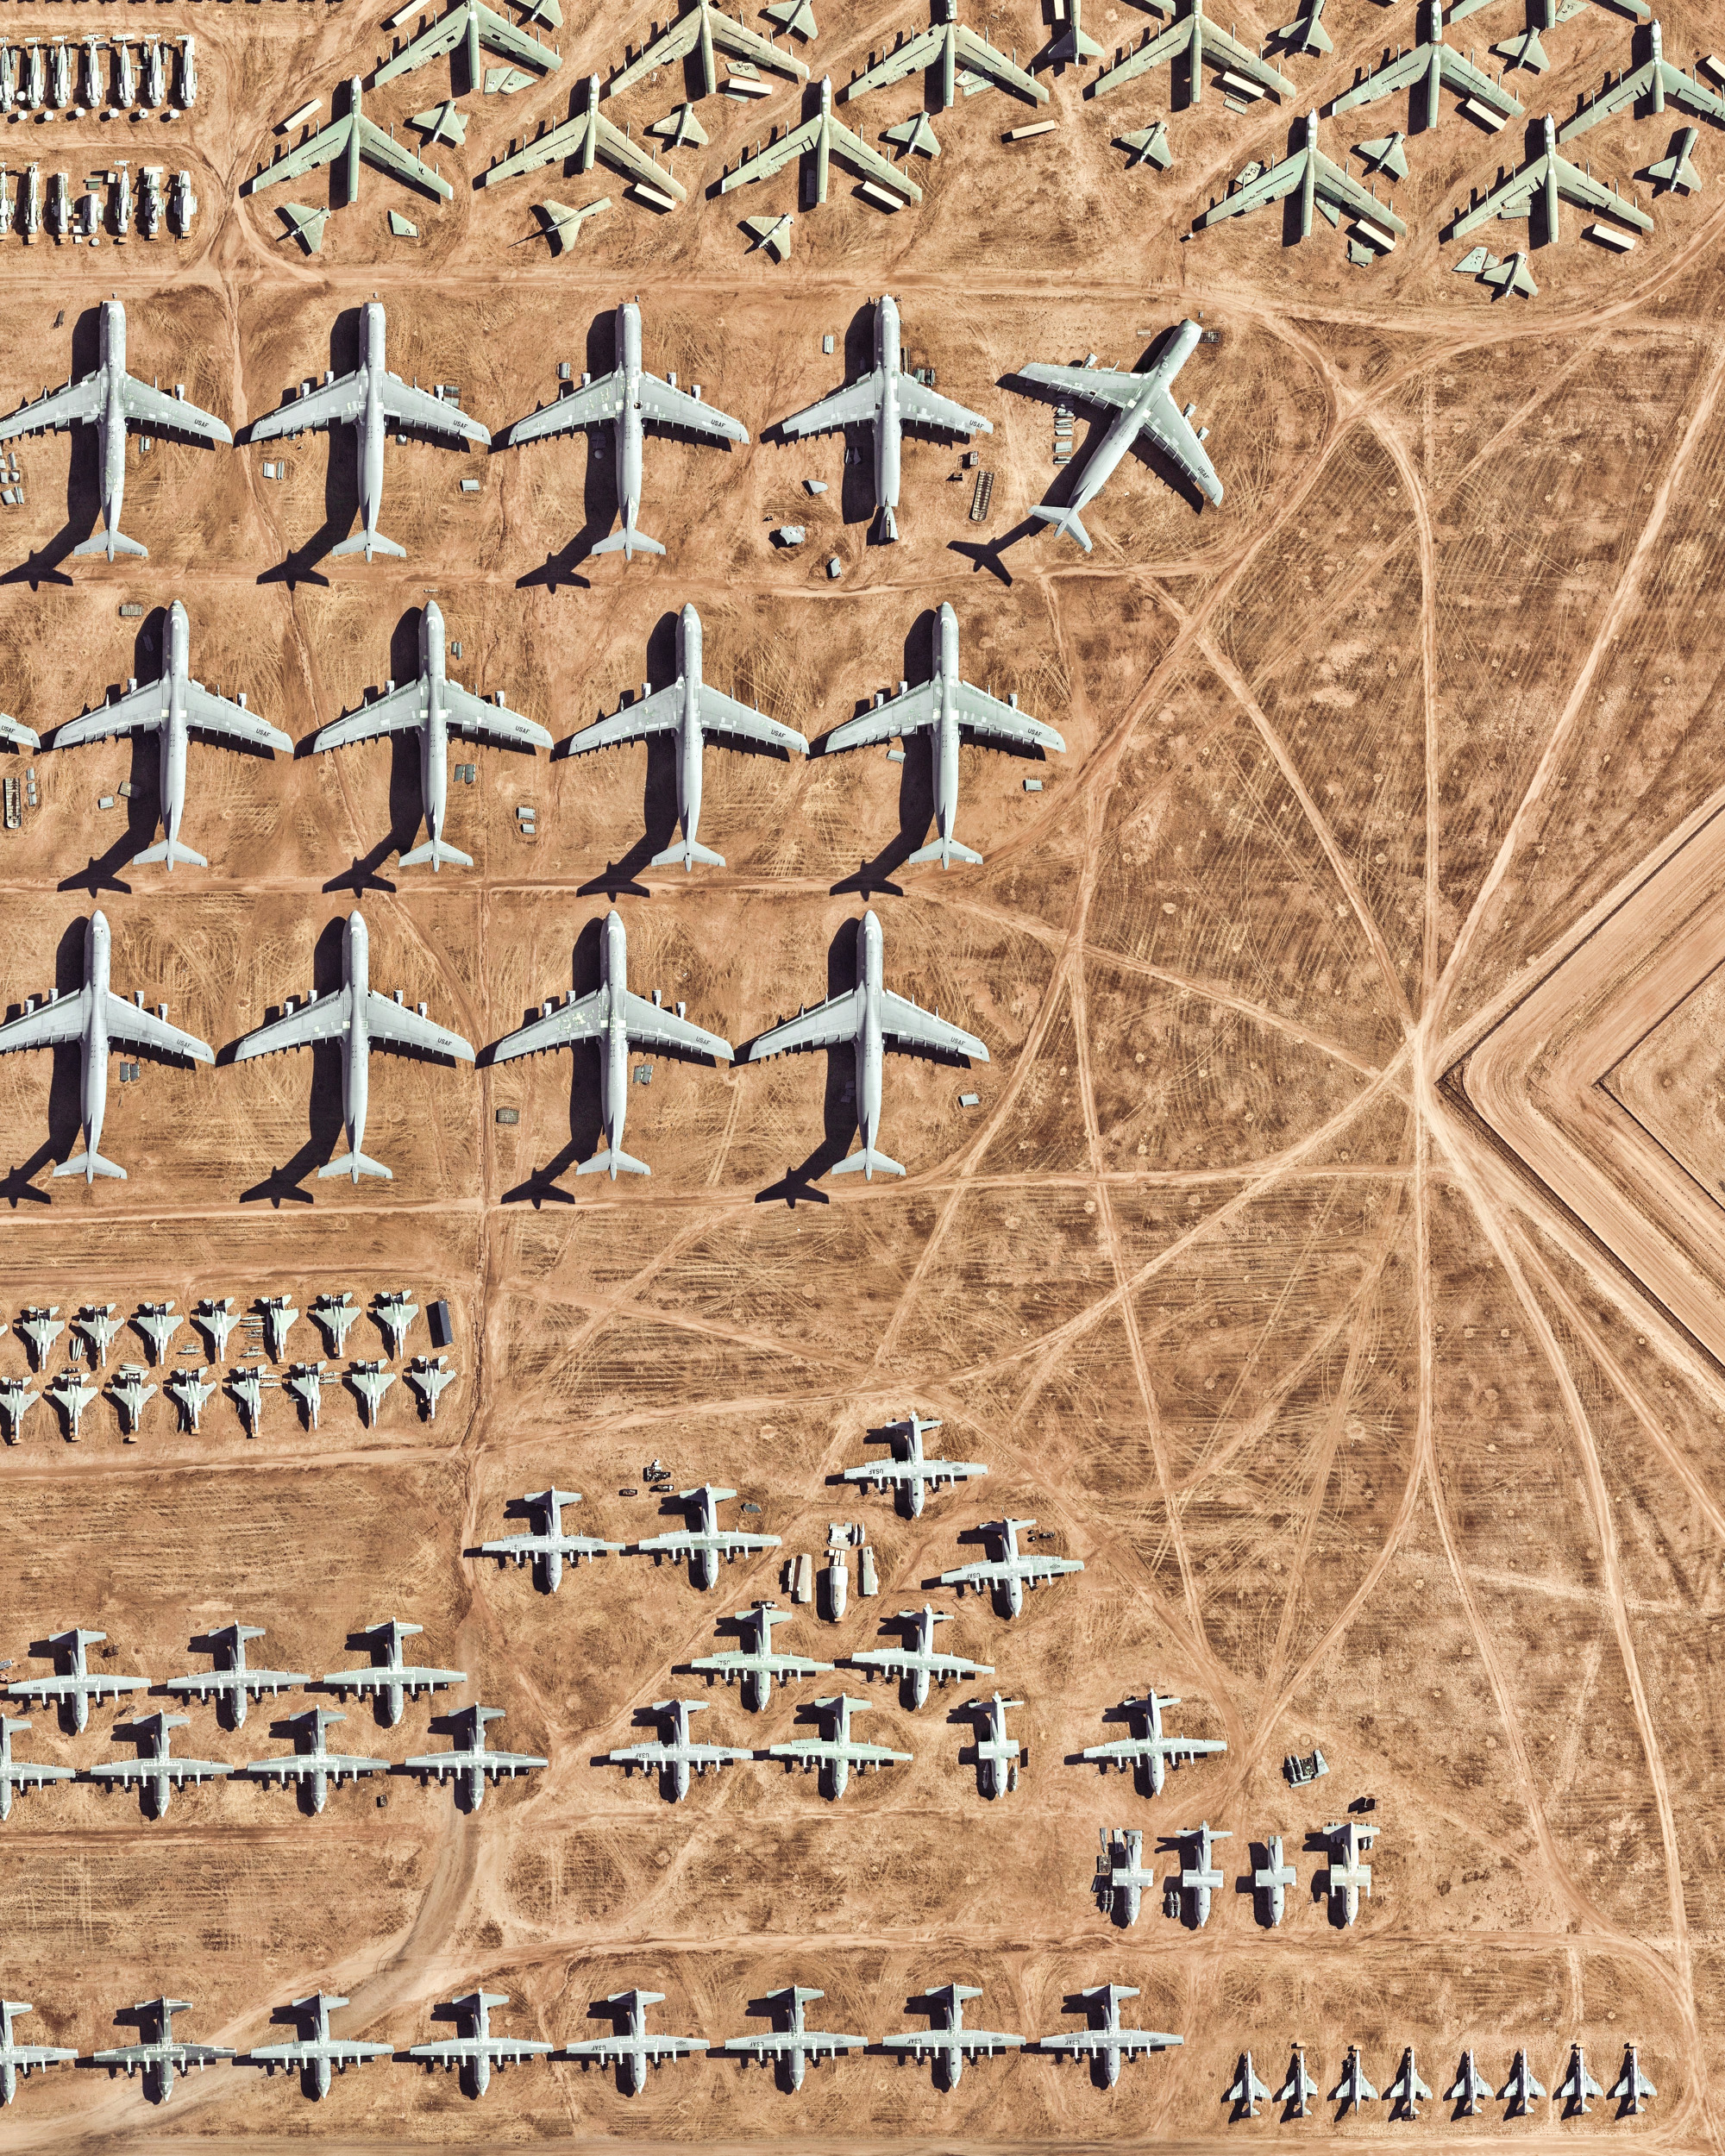 The largest aircraft storage and preservation facility in the world is located at Davis–Monthan Air Force Base in Tucson, Arizona. The facility - run by the 309th Aerospace Maintenance and Regeneration Group - contains more than 4,400 retired American military and government aircraft.  32.150574°, -110.827969°  Source imagery: Nearmap